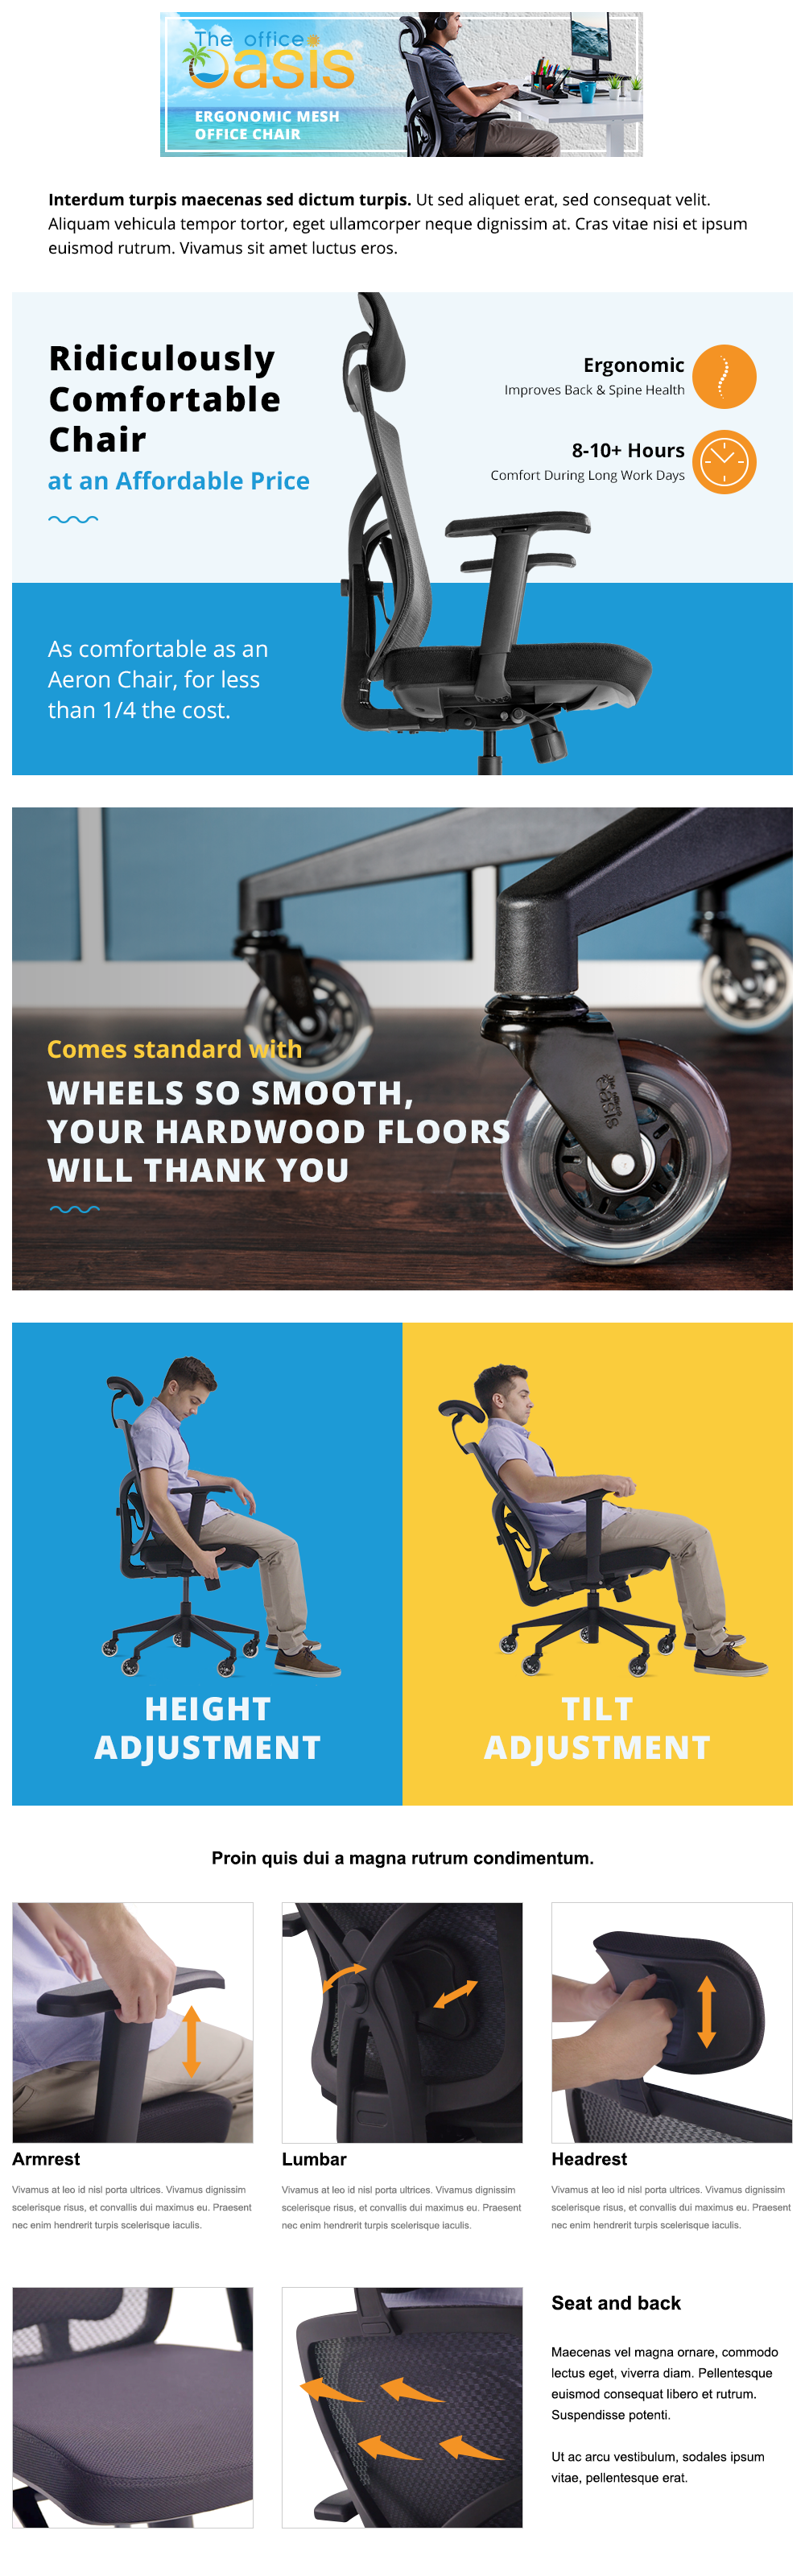 Office Oasis Chair - Images with graphics